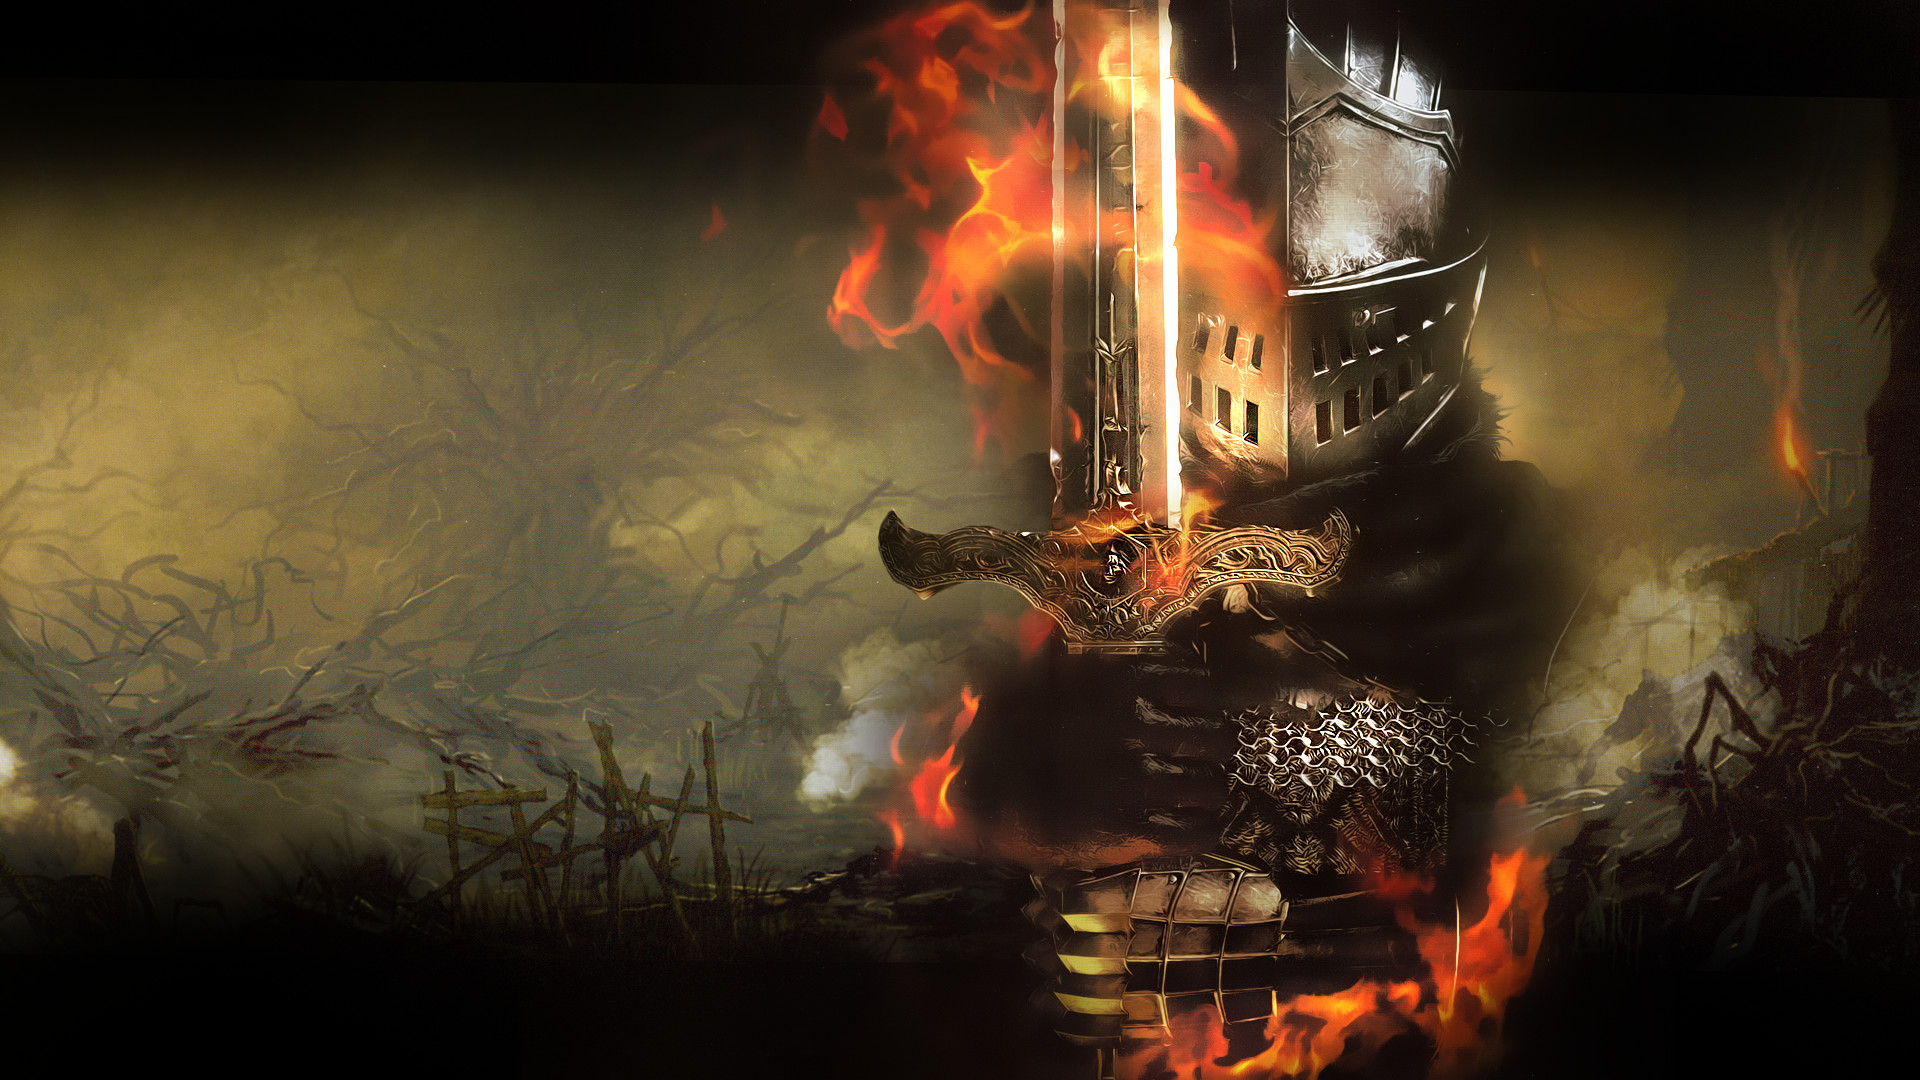 1920x1080 Knight HD Wallpapers Backgrounds Wallpaper Page